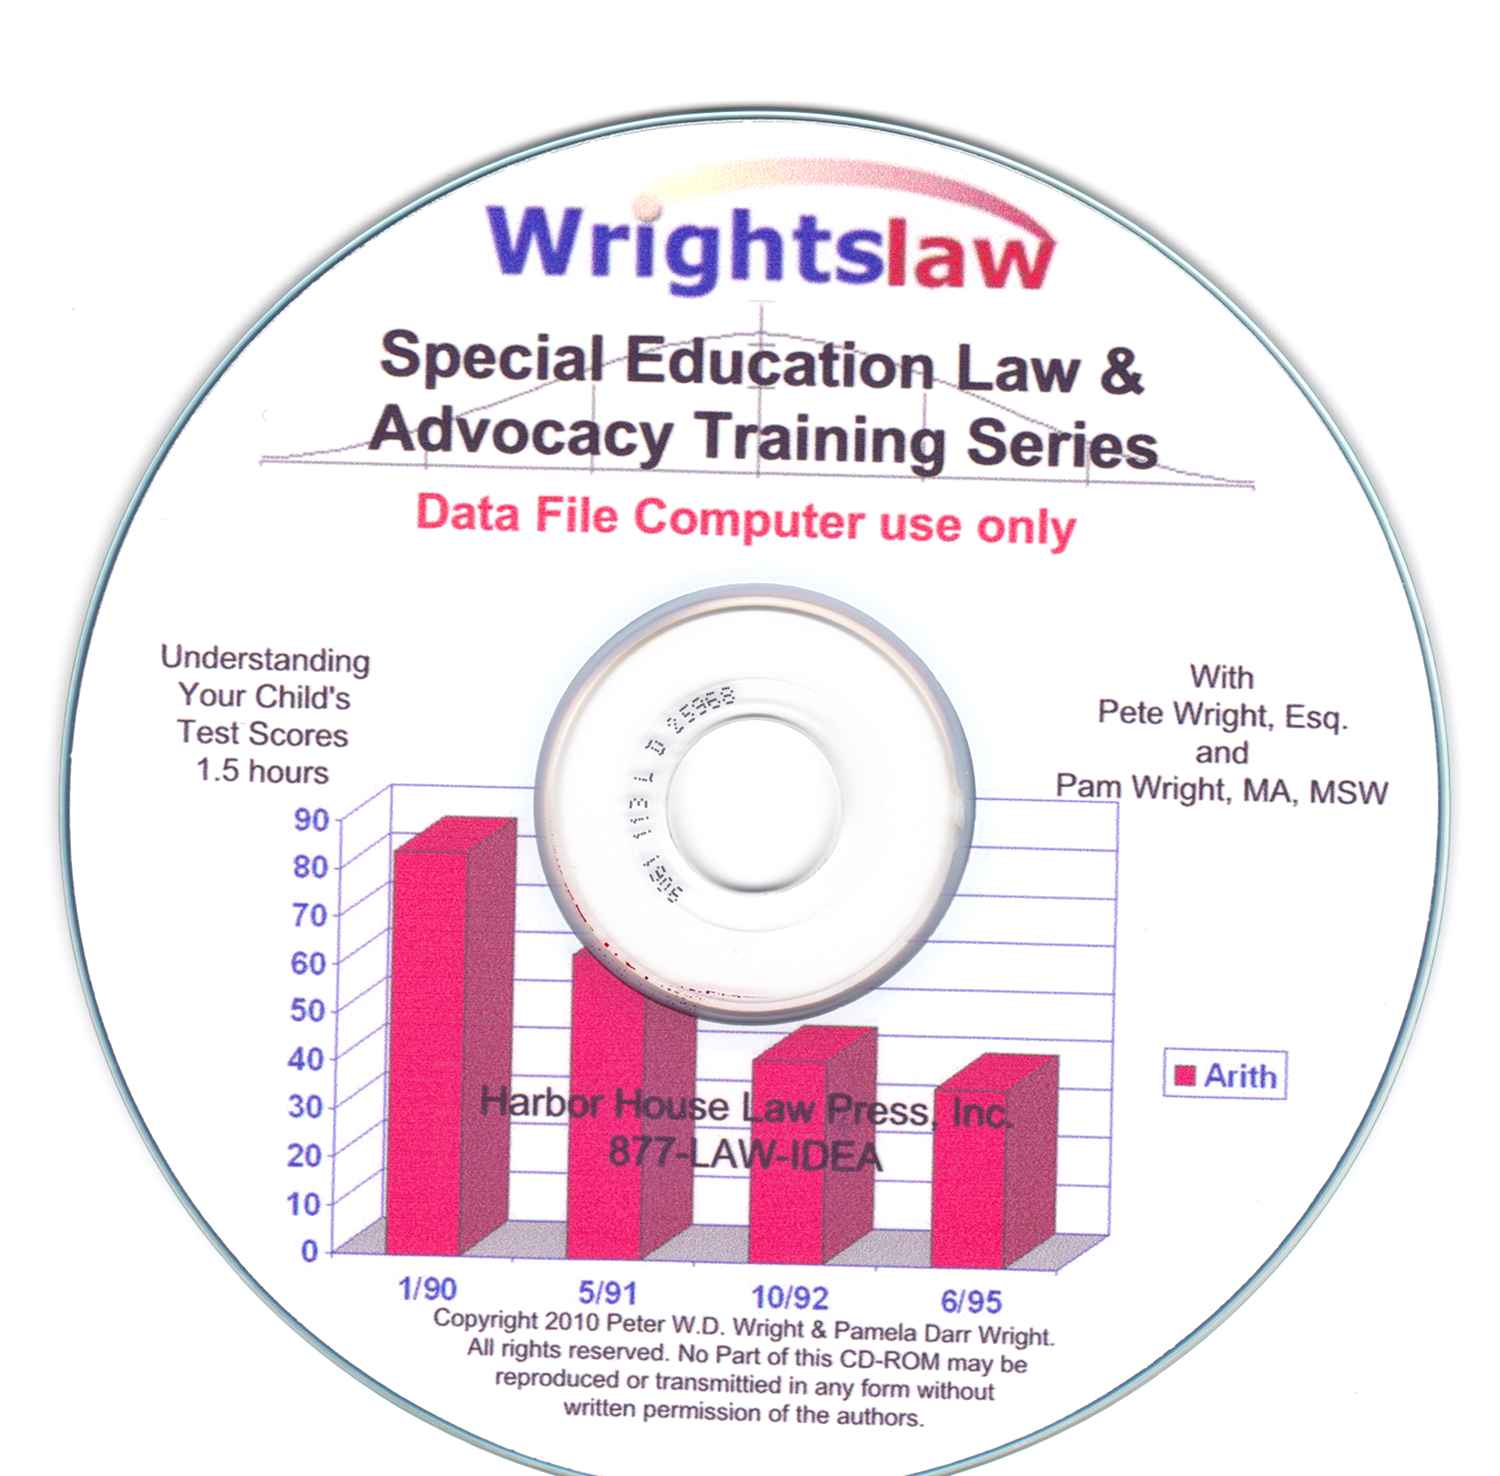 Understanding Your Child's Test Scores, Wrightslaw Multimedia Training on CD Rom